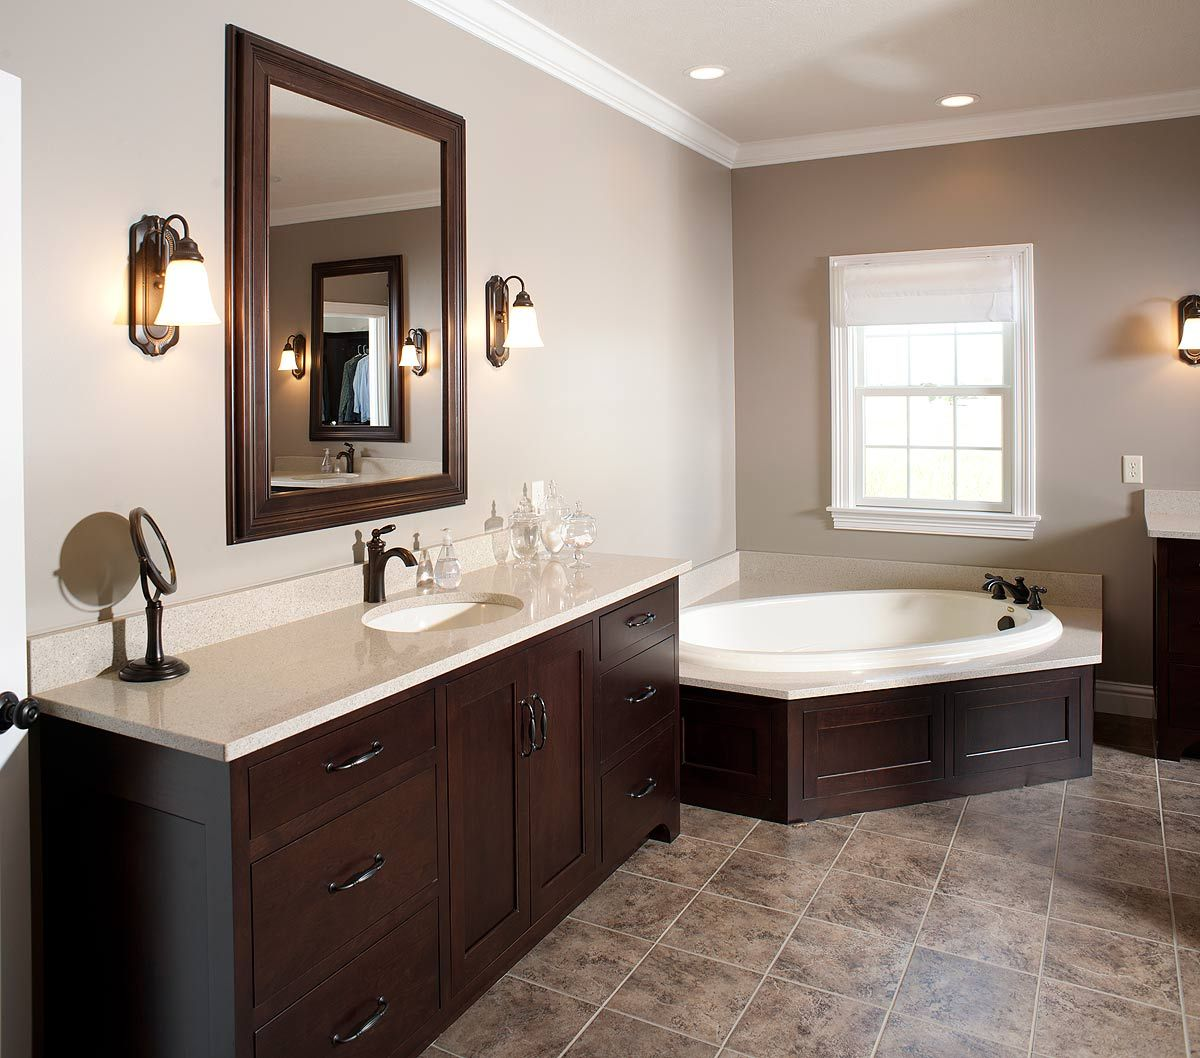 Mullet Cabinet Gallery Bathroom Color Schemes Cherry Wood